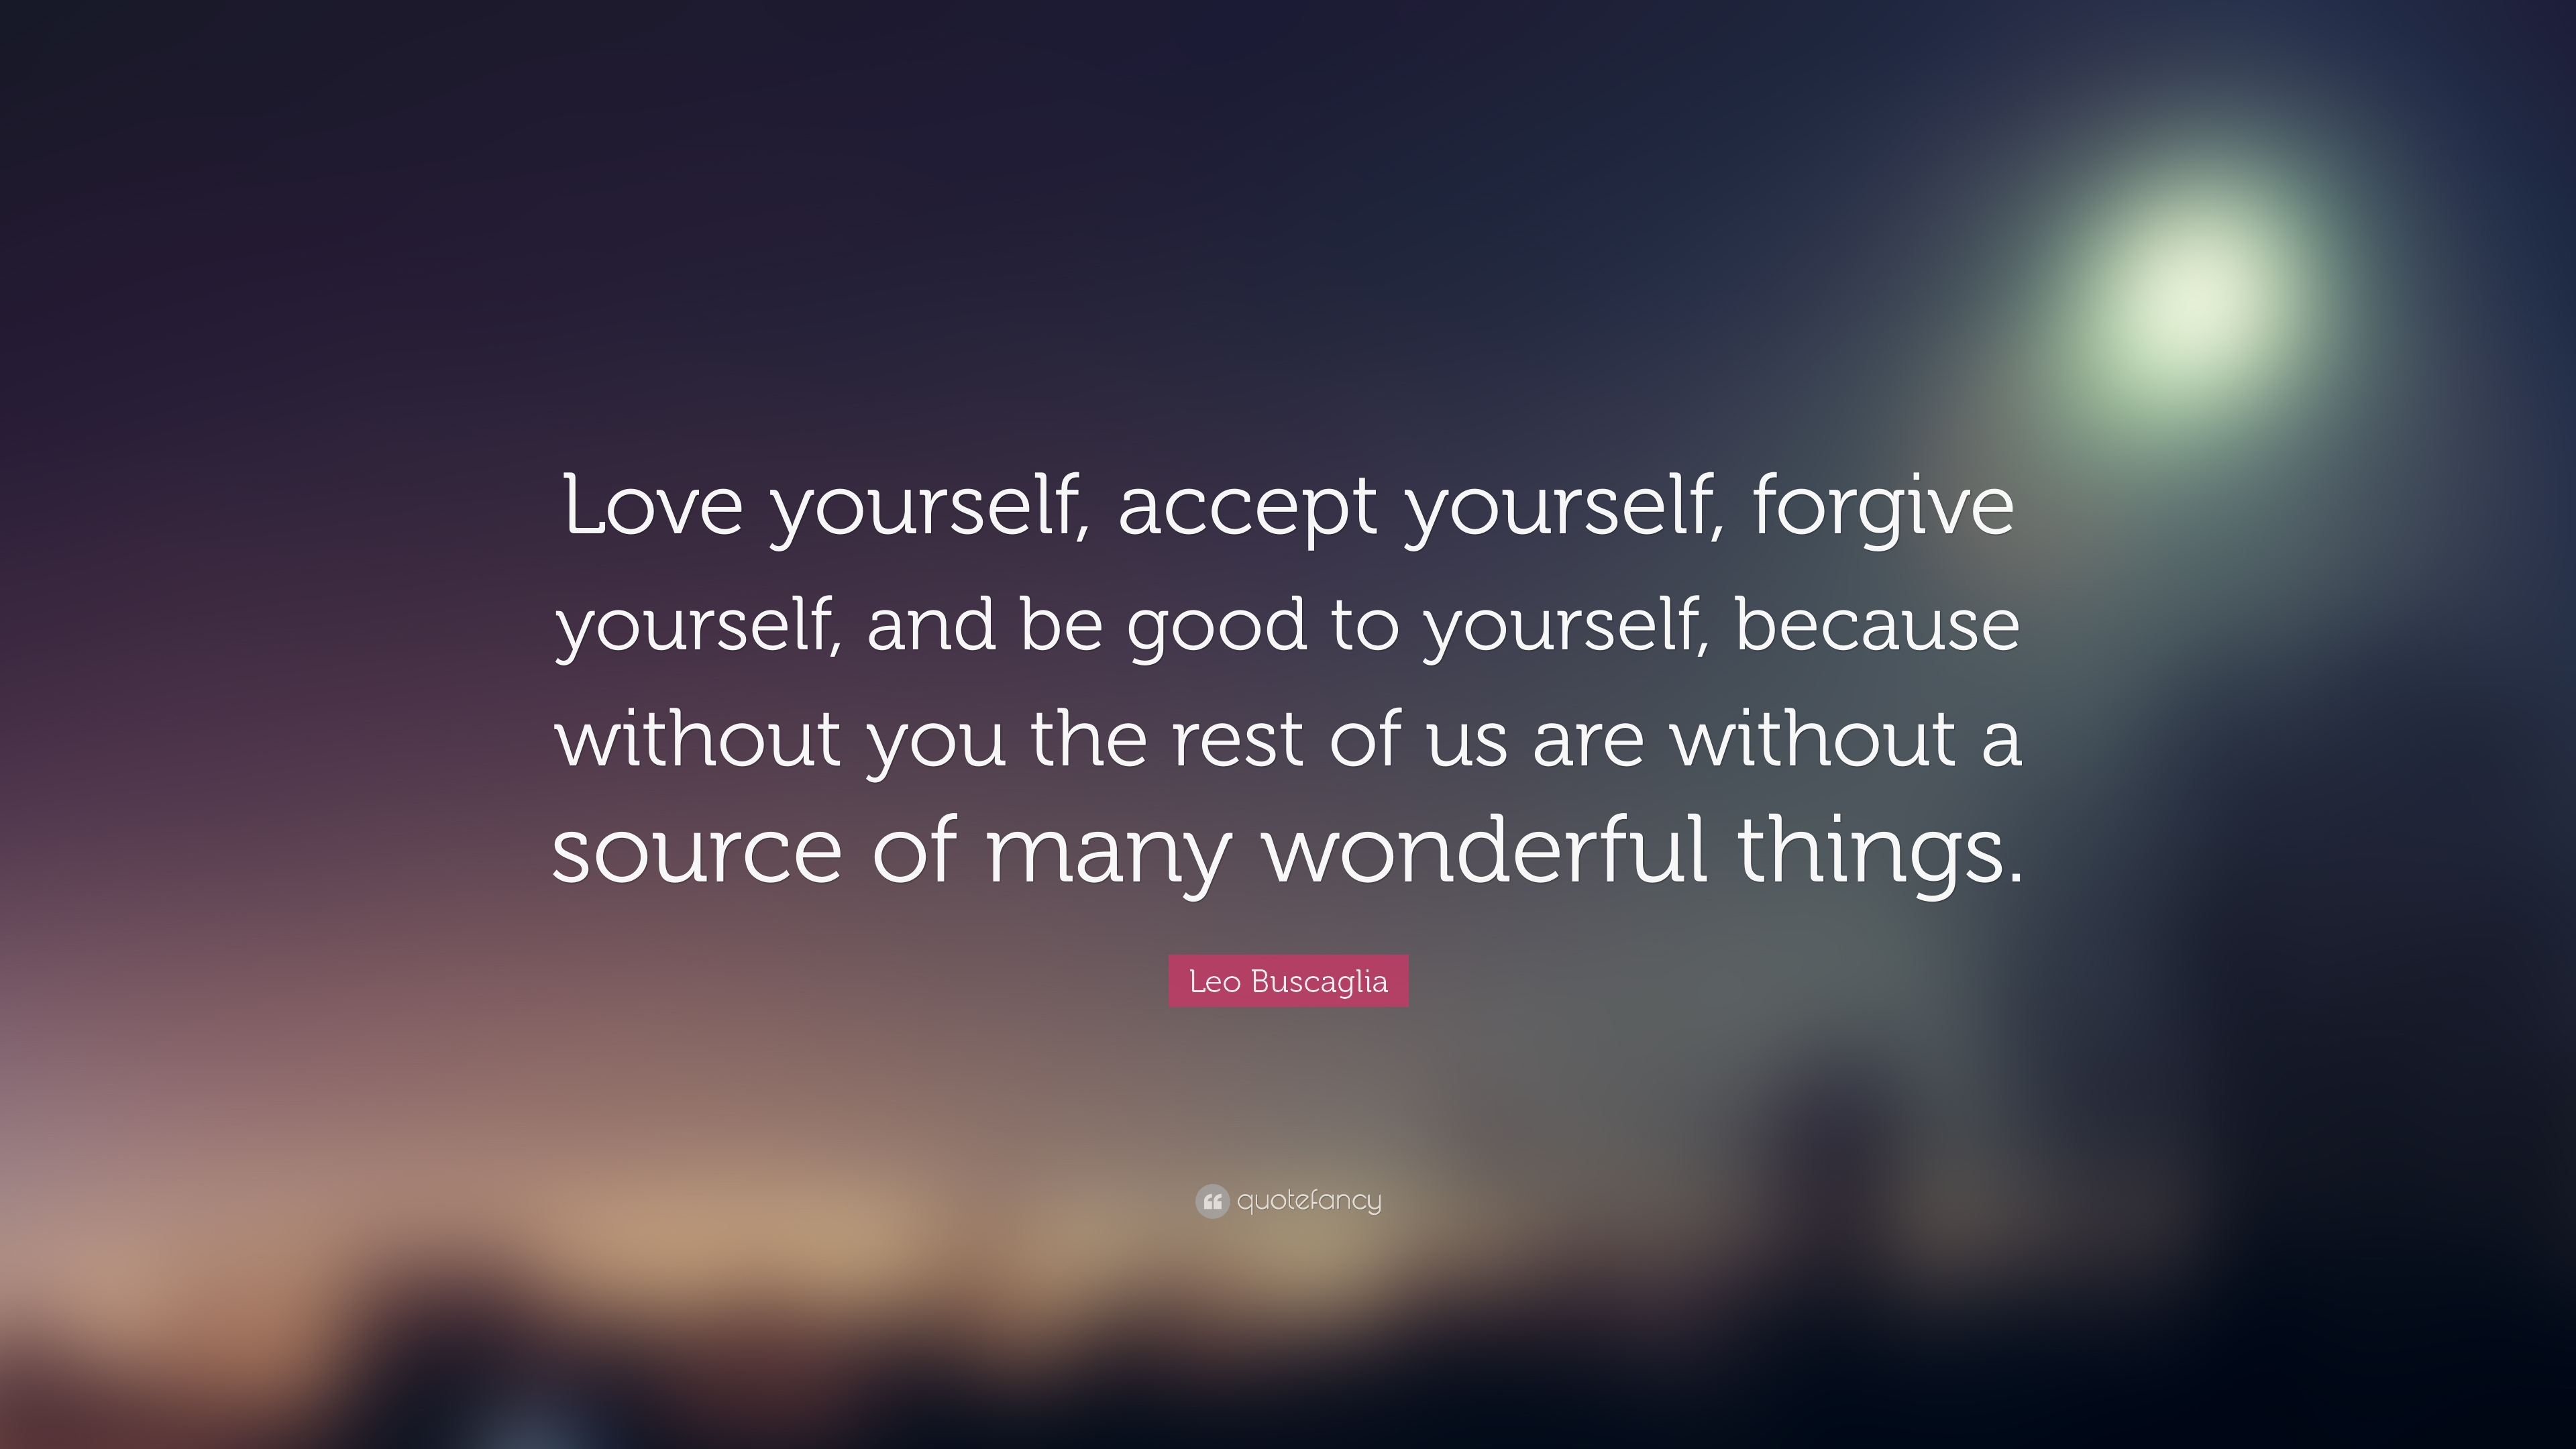 Love Yourself Quotes Wallpaper : Related Keywords & Suggestions for love yourself accept yourself